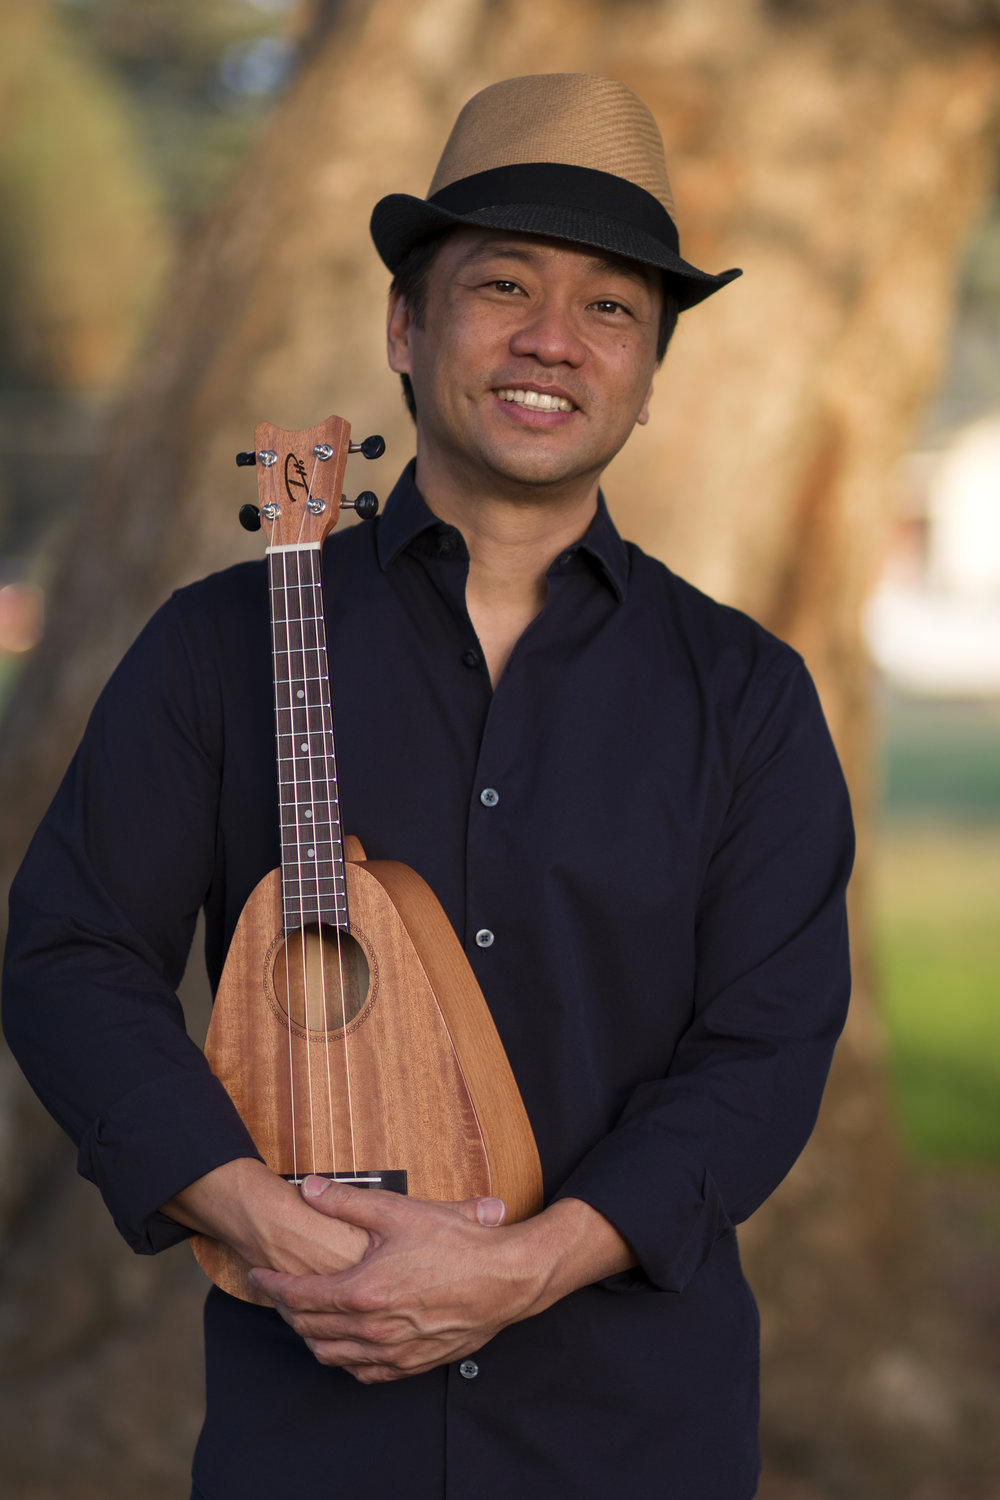 Daniel Ho with an ST Concert Ukulele by Romero Creations